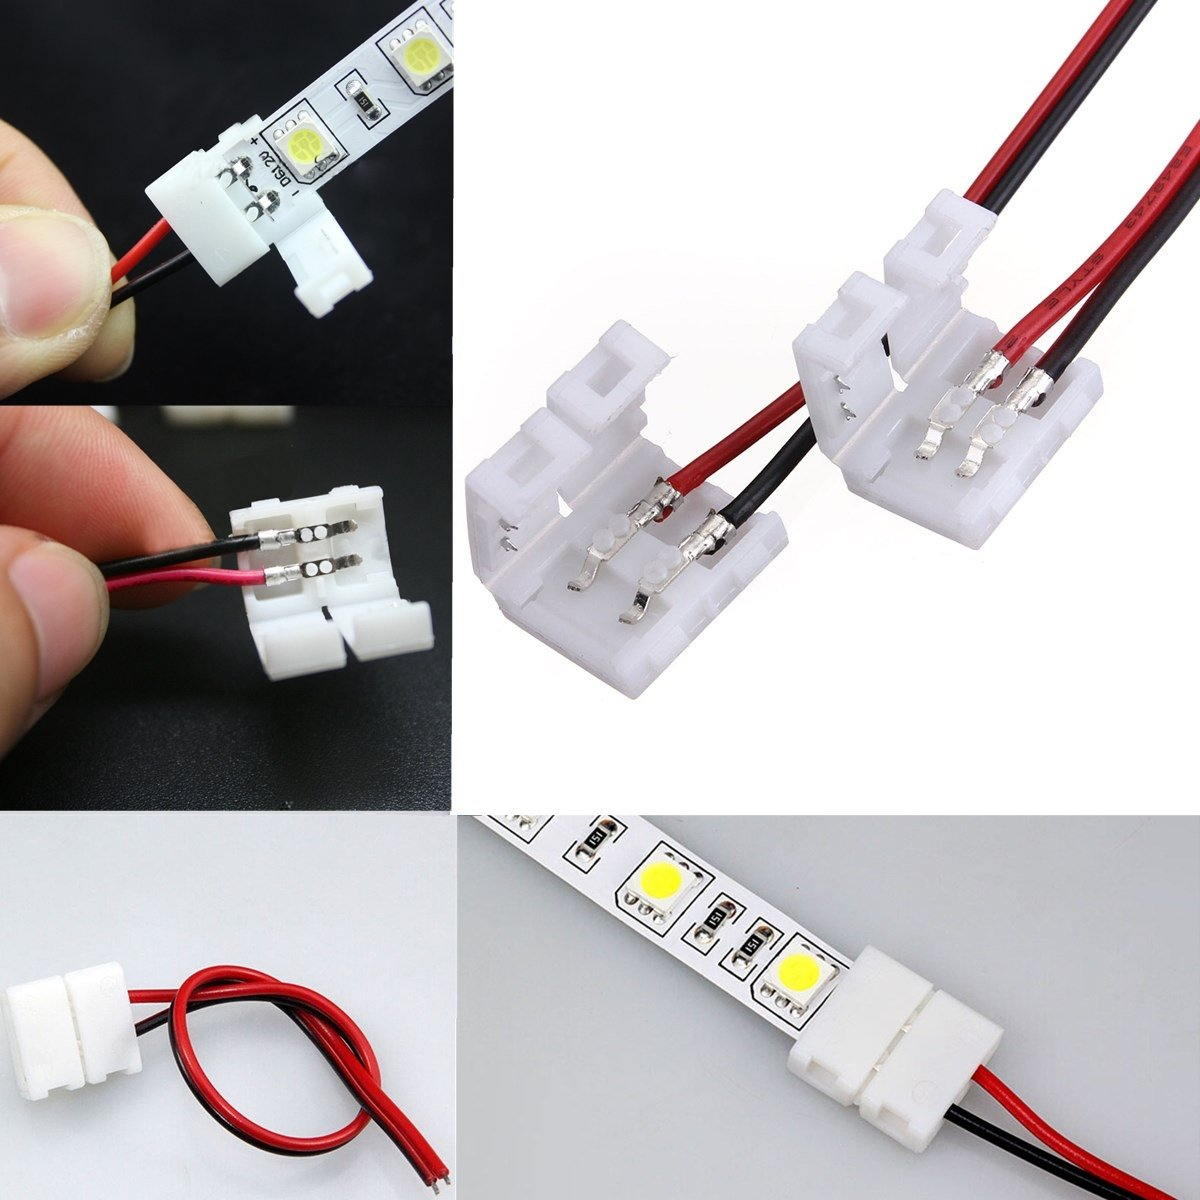 10xNew 2-Pins Connector For Led Strip Wire 3528/5050 With PCB Ribbon